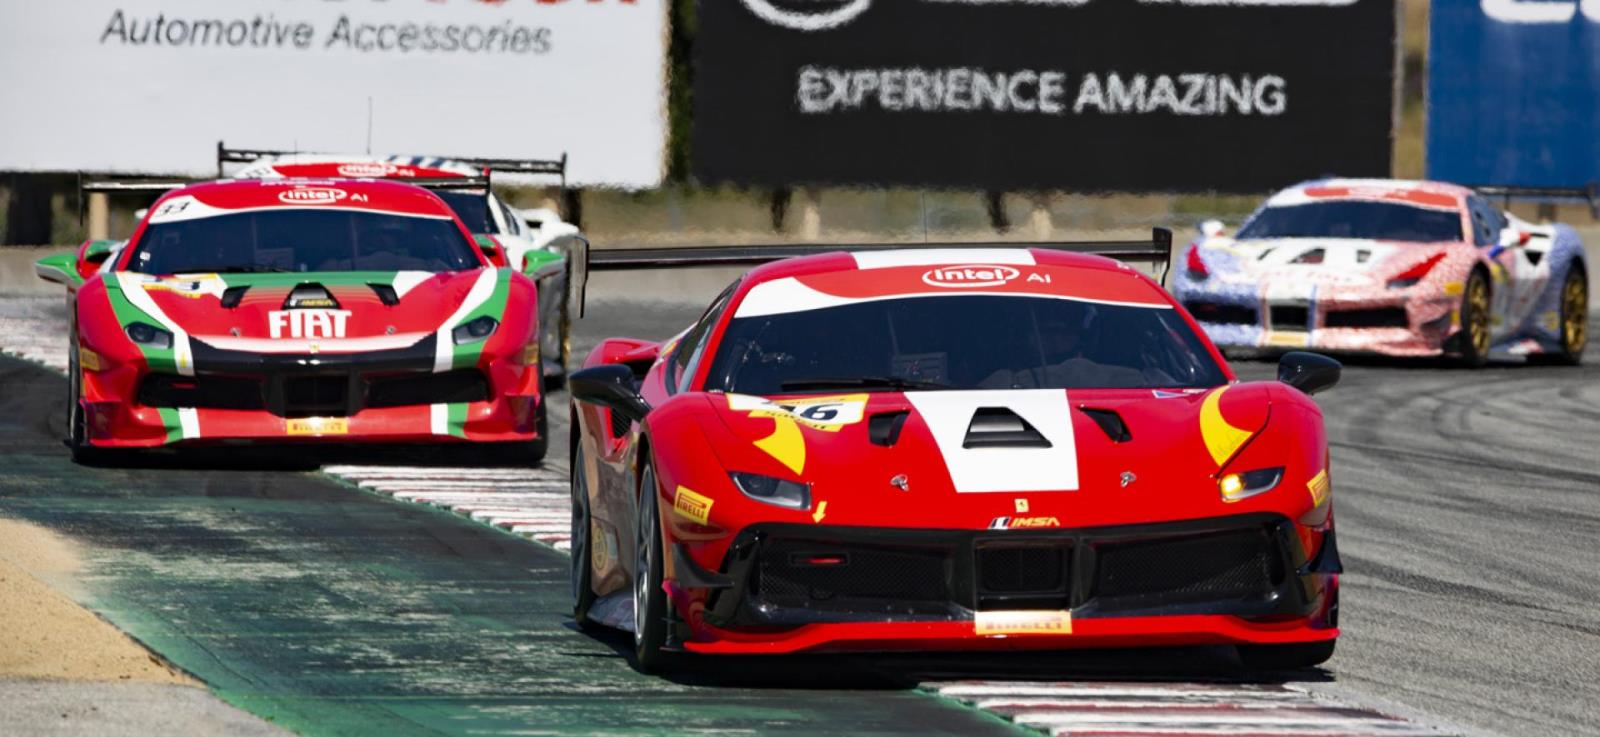 photo of ferraris racing on track